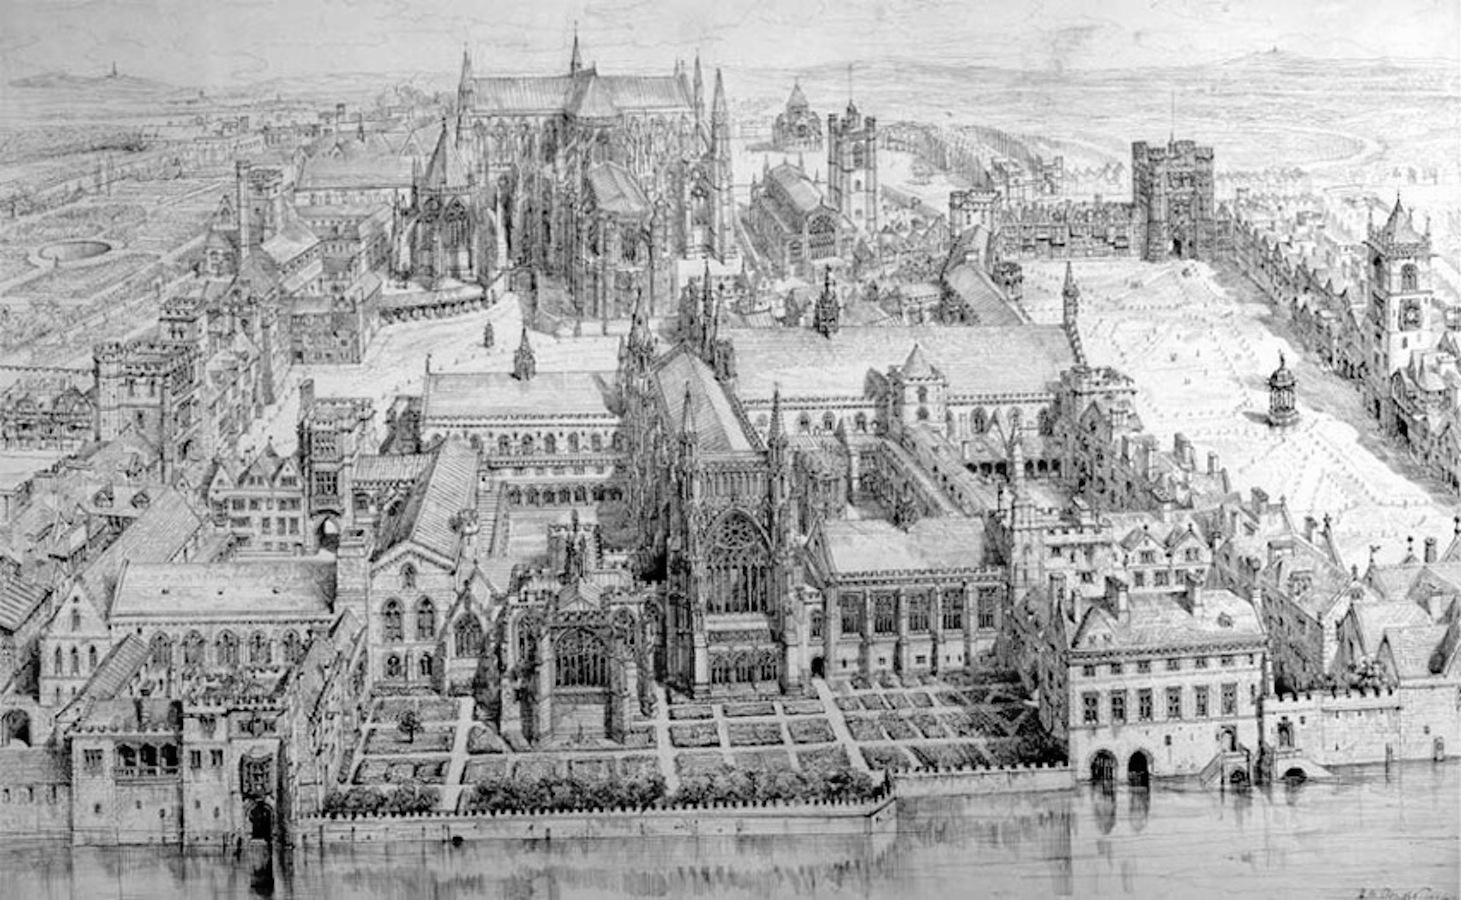 Big ben and the history of the clock tower at the palace of westminster